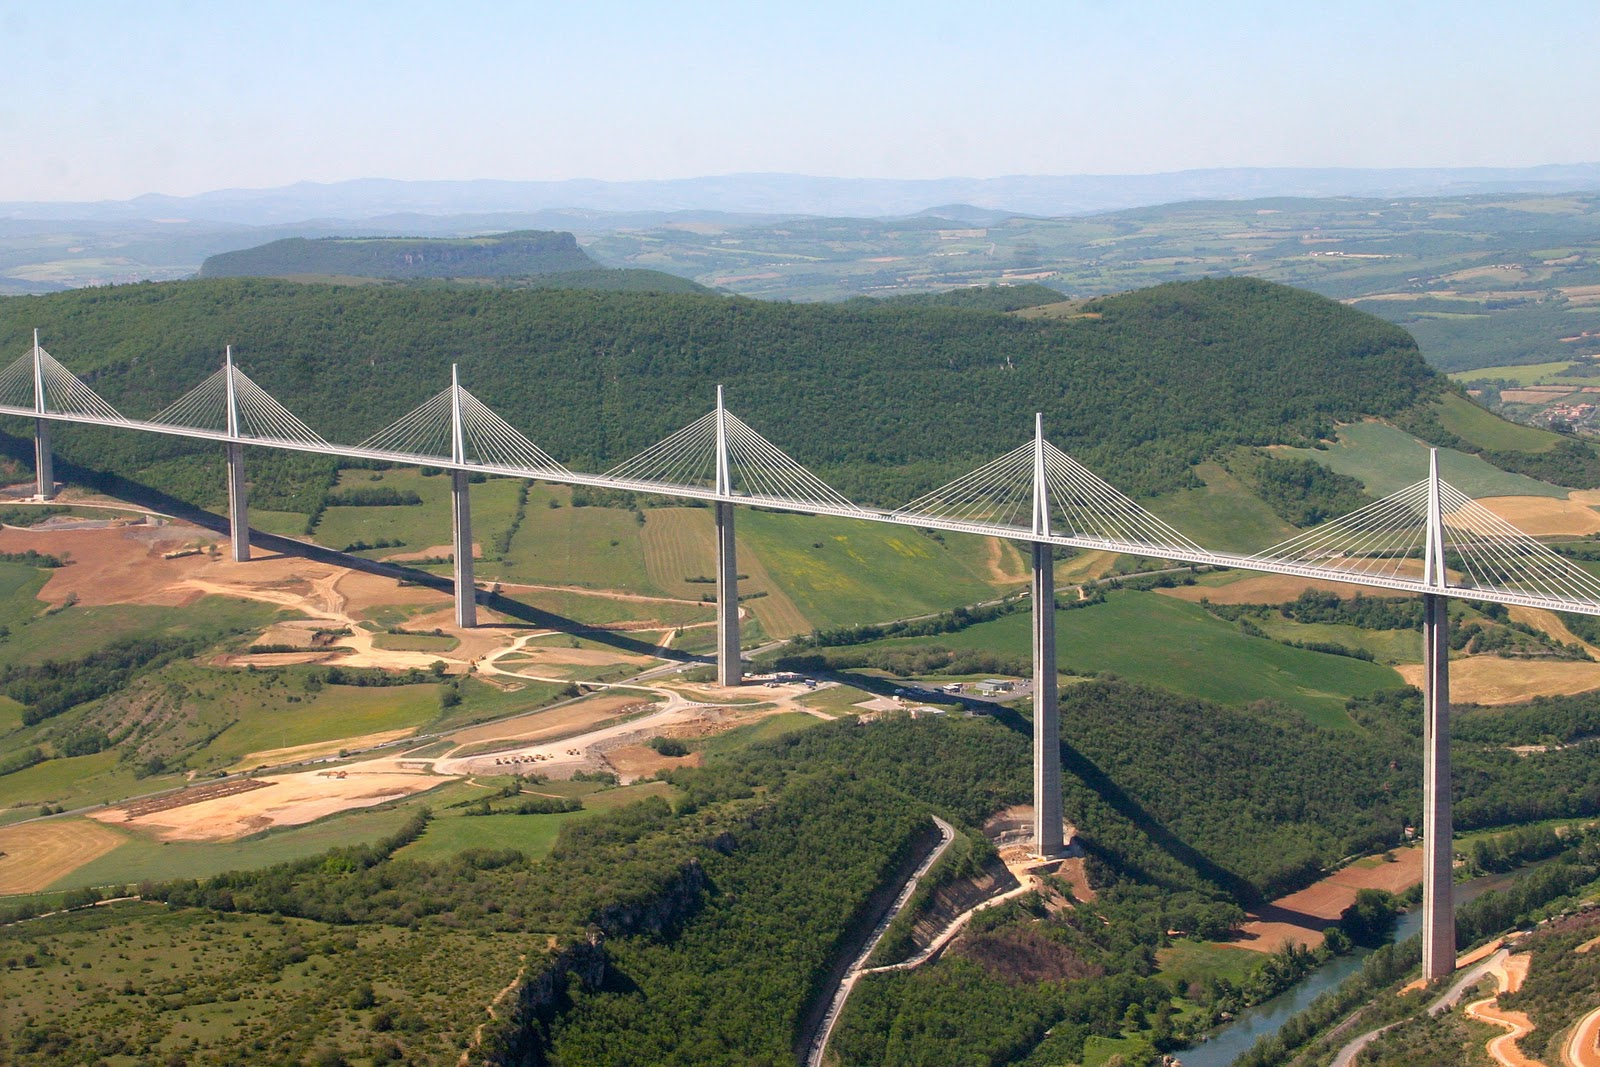 millau bridge Millau viaduct, the highest cable-stayed bridge-road in the world, a feat of engineering created by the engineer m virlogeux and the architect n foster.